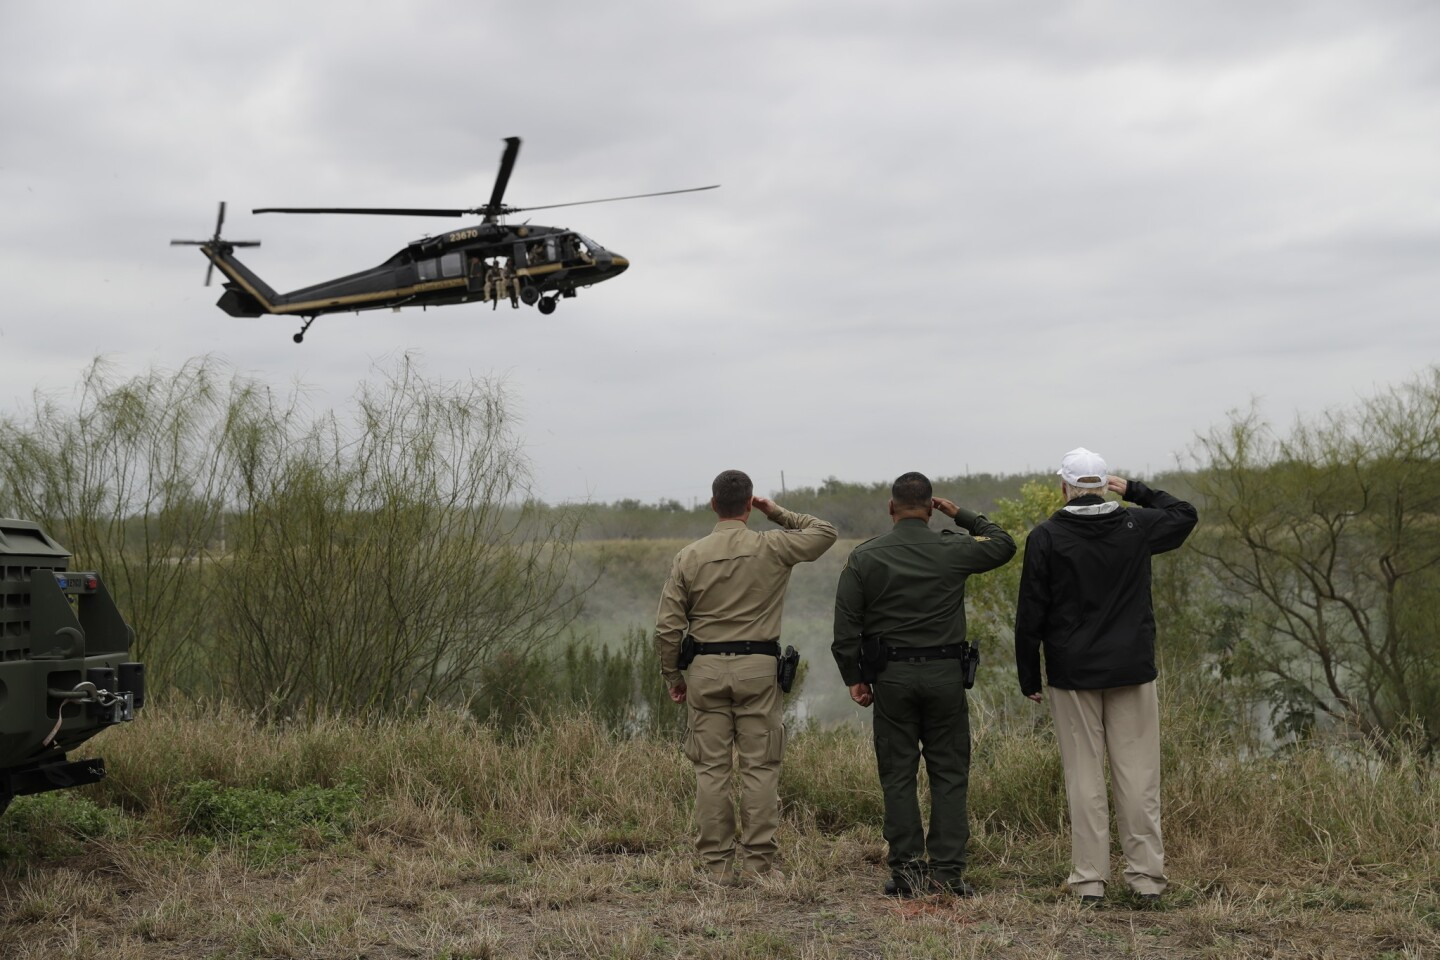 President Trump salutes a U.S. Customs and Border Protection helicopter as he tours the U.S.-Mexico border Jan. 10 in McAllen, Texas.